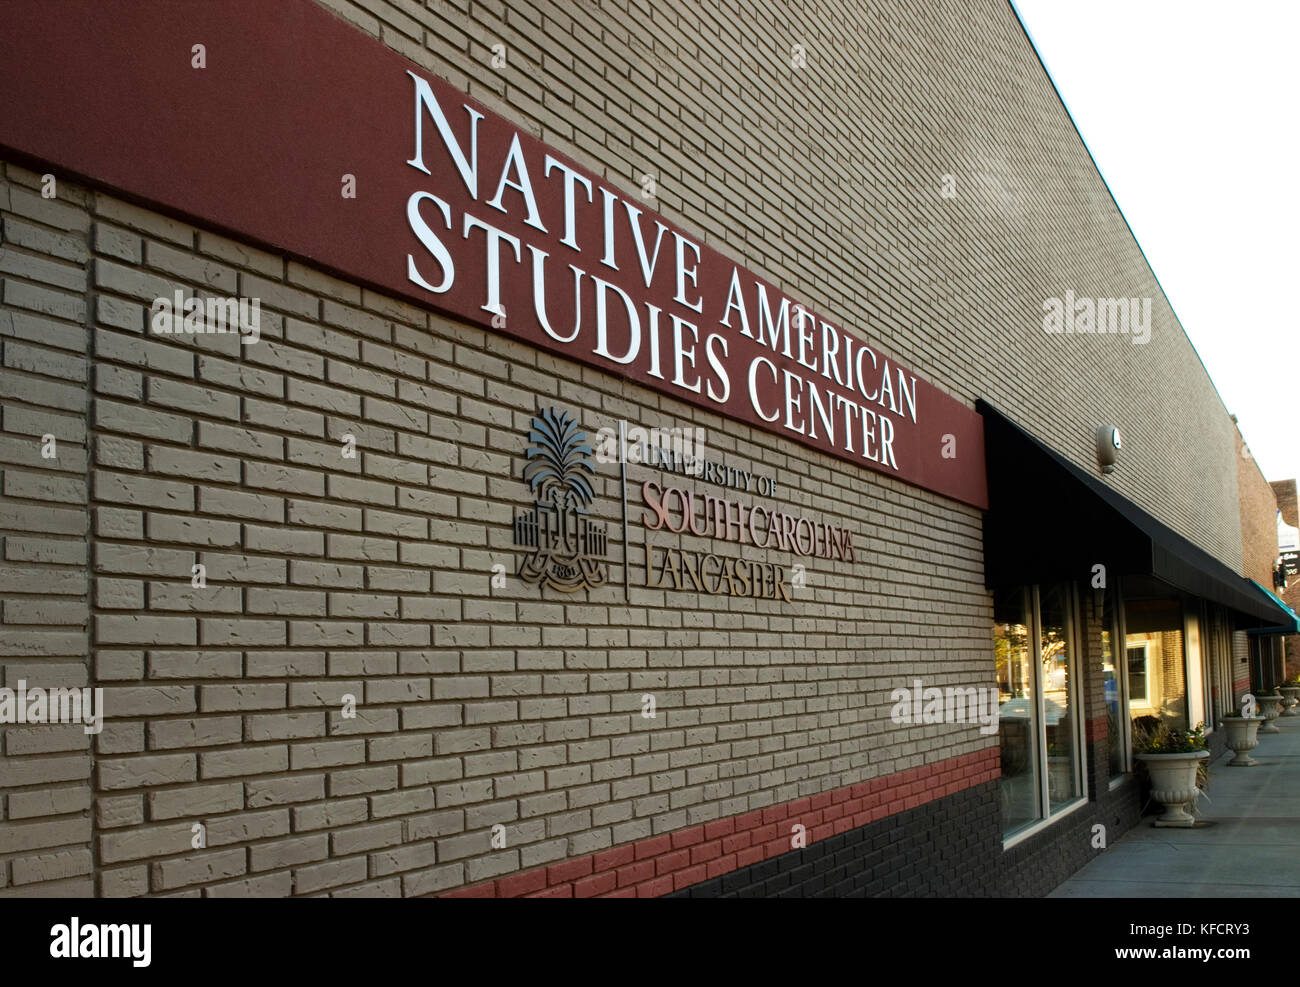 Building exterior and sign at Native American Studies Center Lancaster SC, USA. - Stock Image